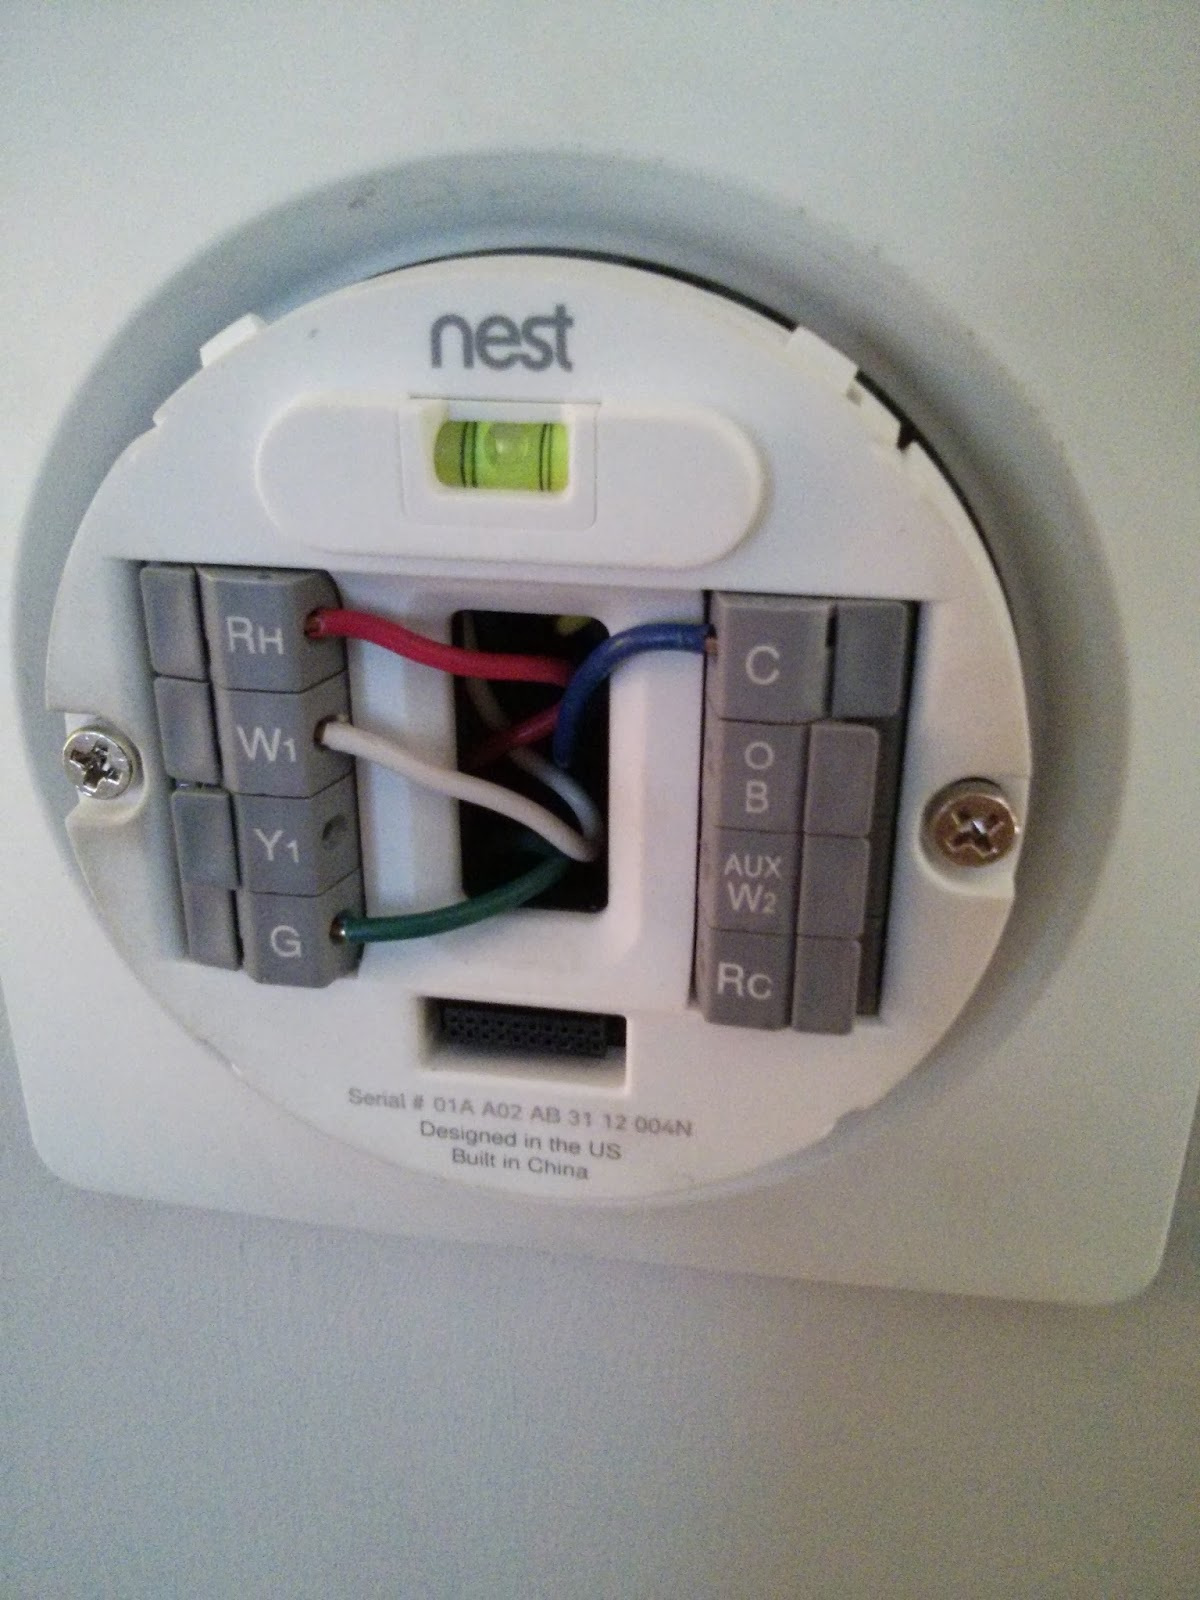 Trane Xr80 Furnace Problems Vs Nest Thermostat This House Needs Work Wiring Your Here It Is On The Other End Of Wire Version 1 Hardware